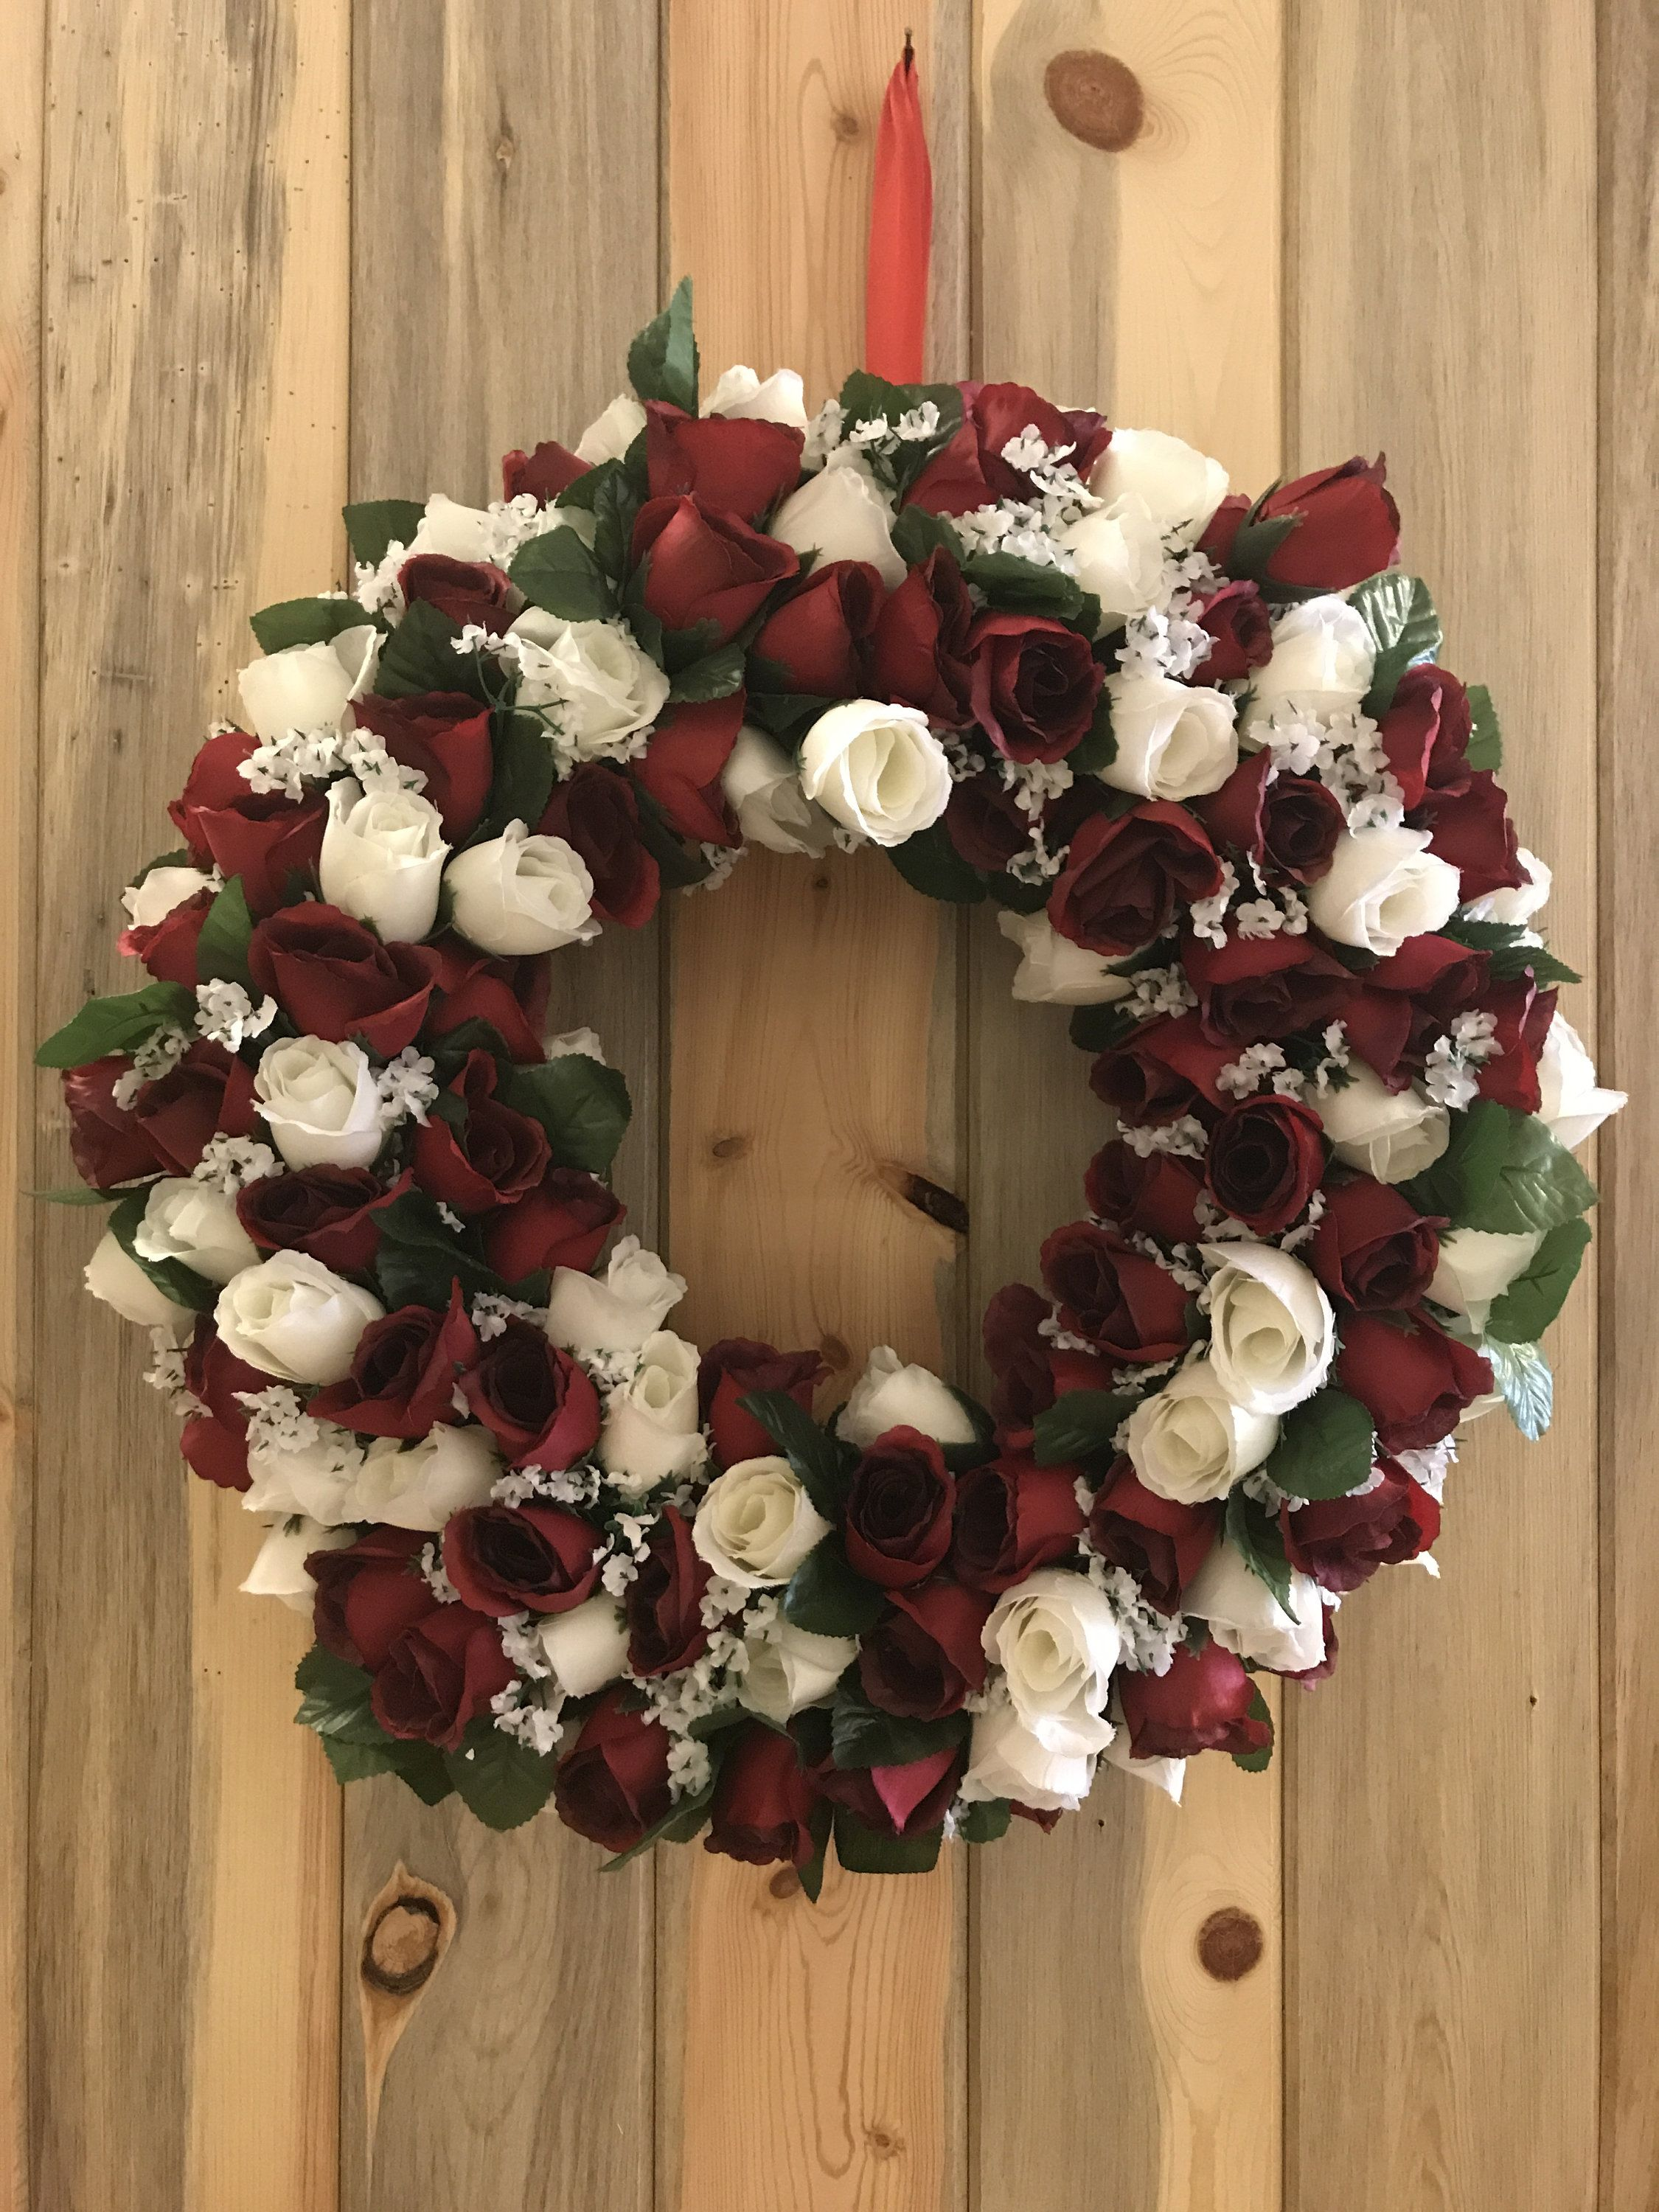 Rose Wreath Red Roses White Roses Mothers Day Wreath Front Door Wreath Indoor Wreath Summer Wreath Mantle Wreath Summer Door Wreaths Spring Door Wreaths Indoor Wreath